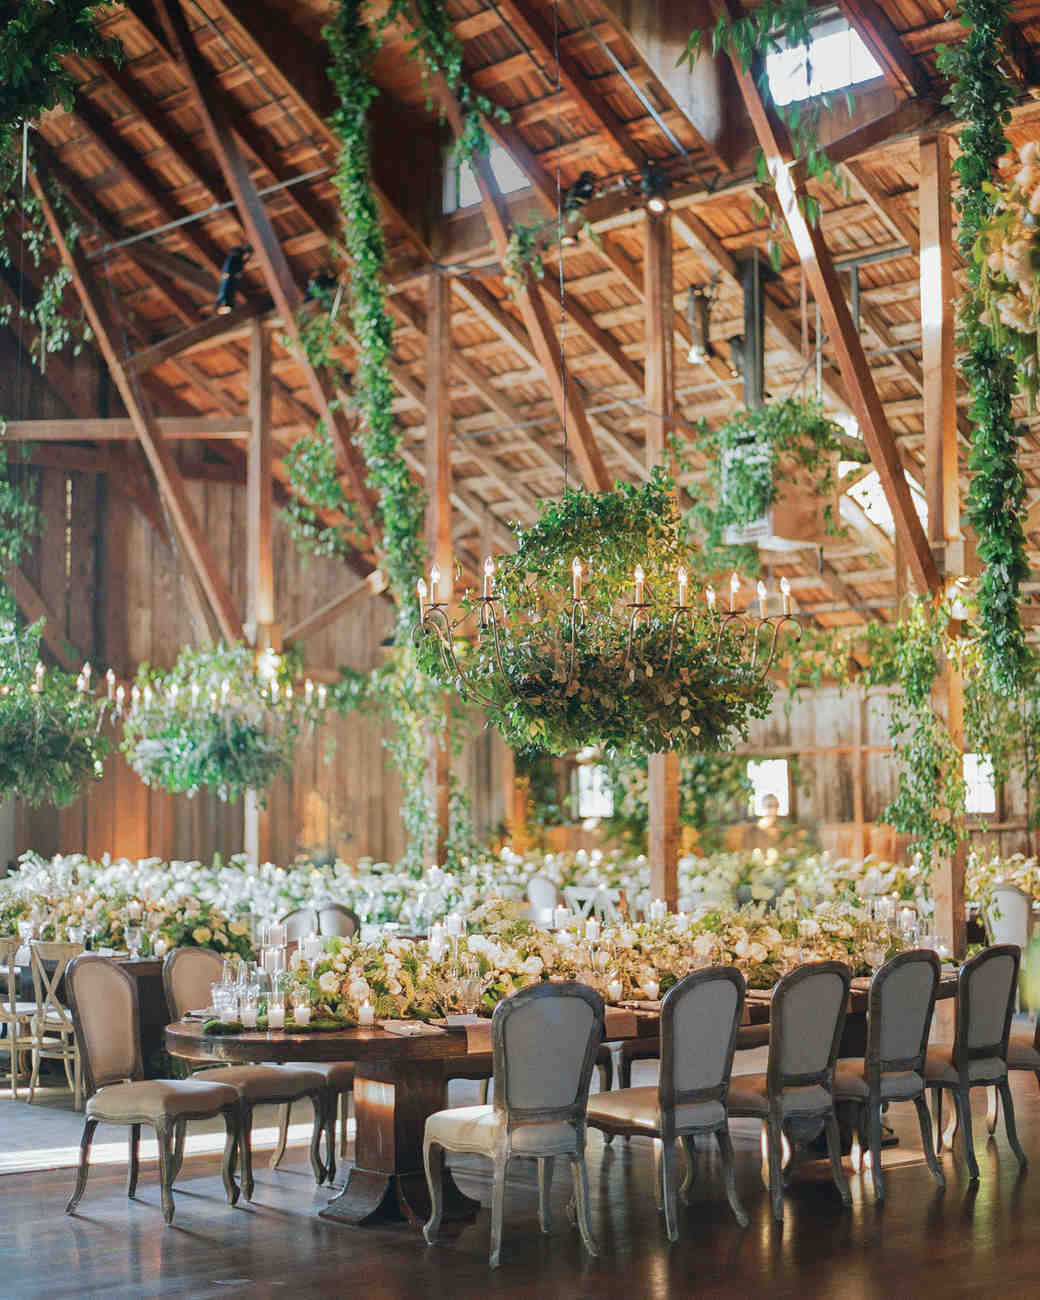 breelayne-hunter-wedding-california-reception-barn-0111-s112849.jpg